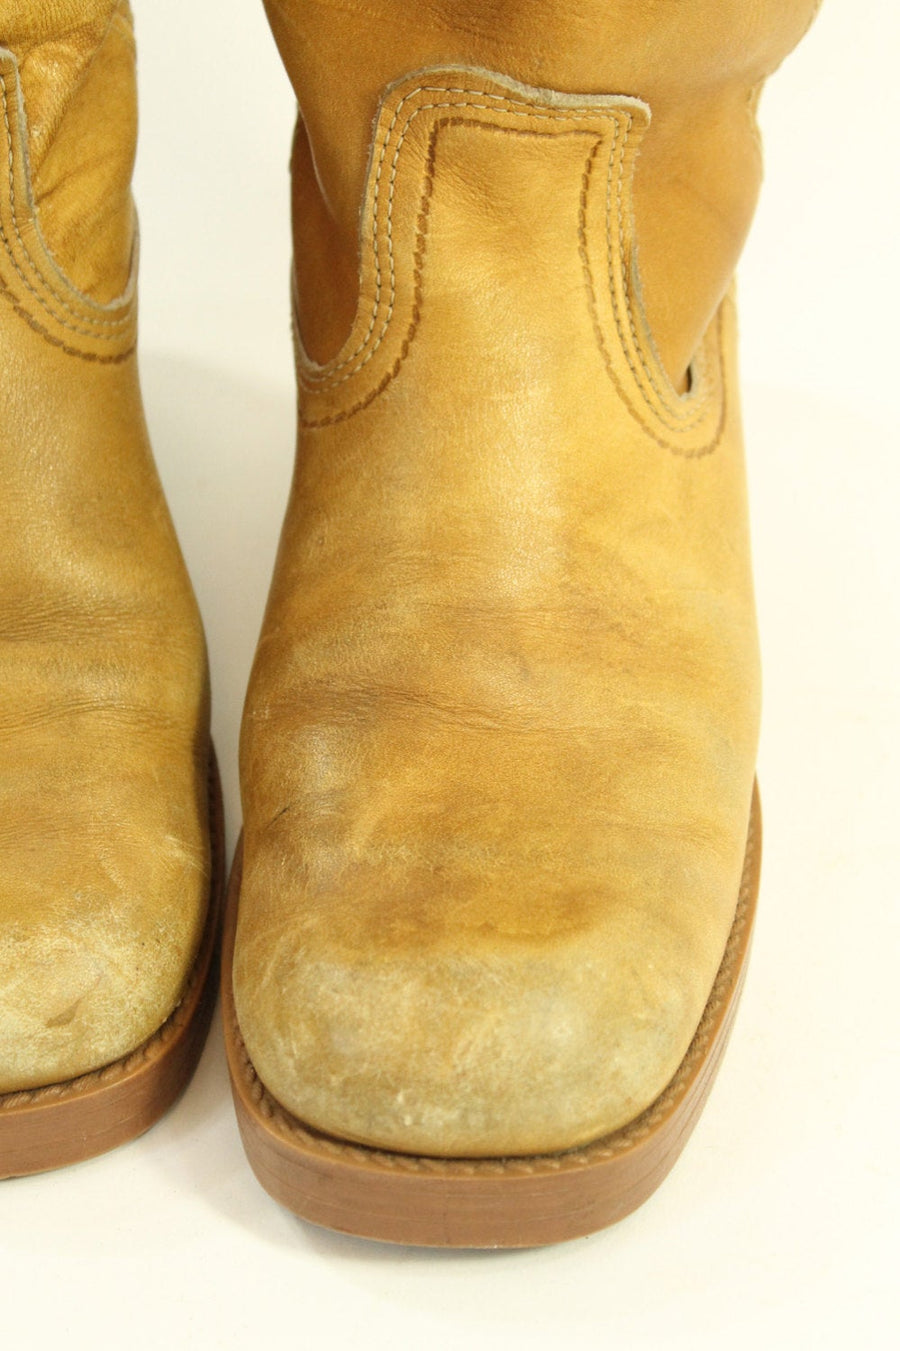 1970s leather campus boots | size 6 us